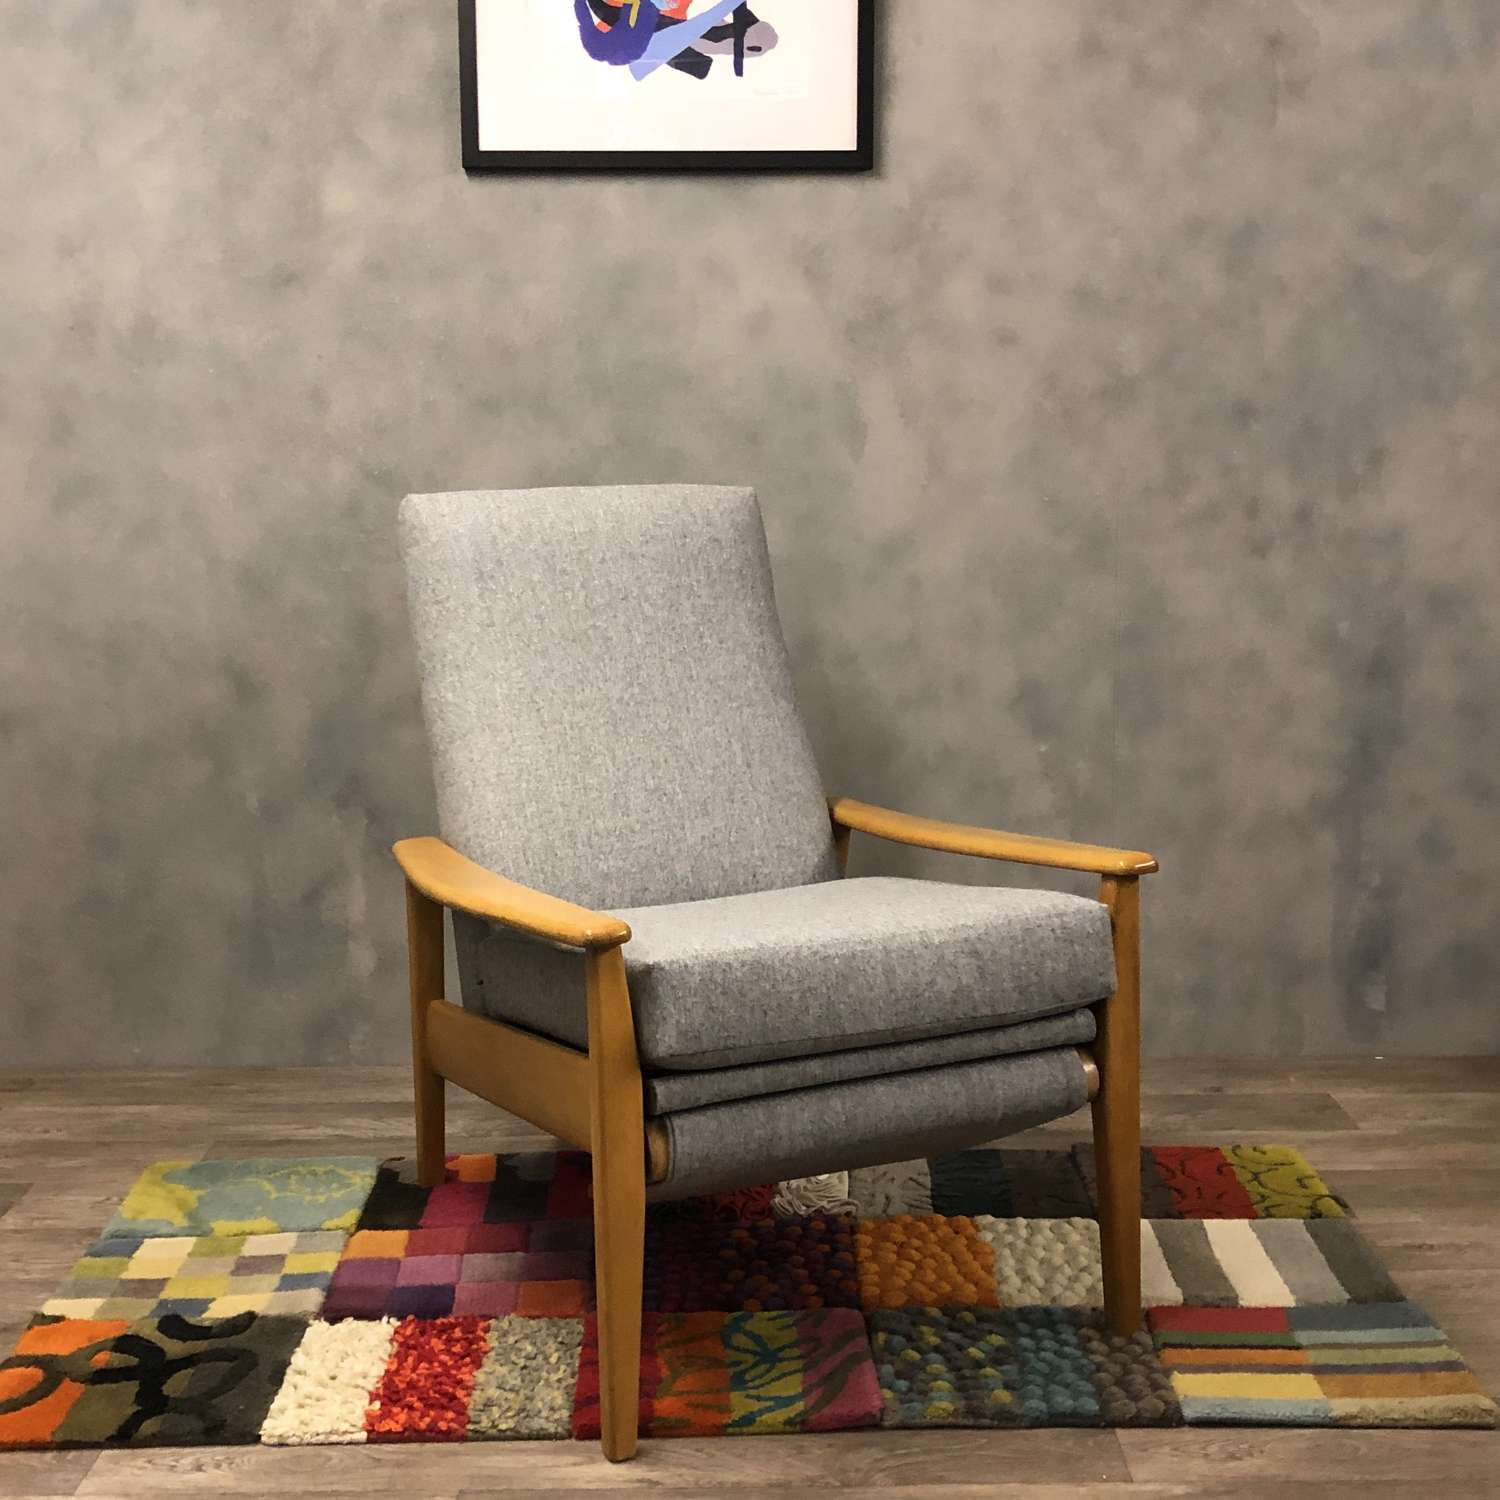 Grey Greaves and Thomas midcentury recliner lounge chair.